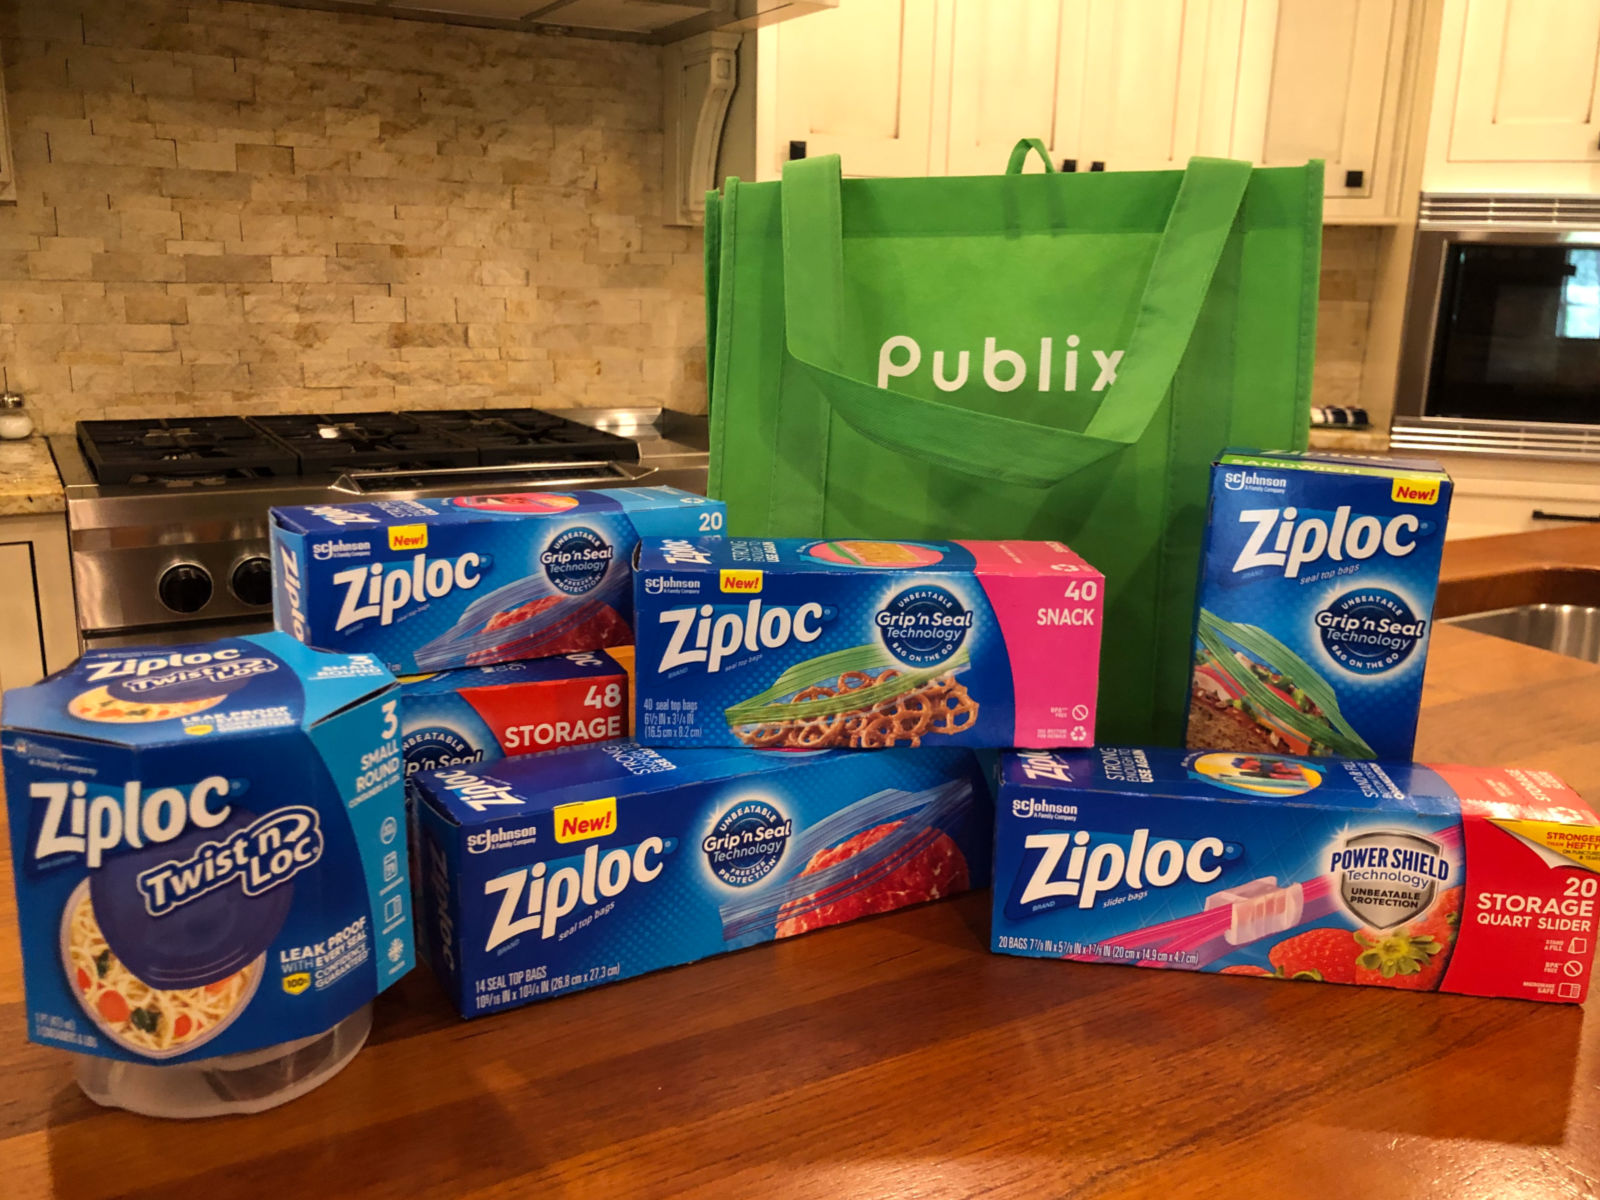 Trust Ziploc® Brand Products For Your Summer Fun - Save Now At Publix on I Heart Publix